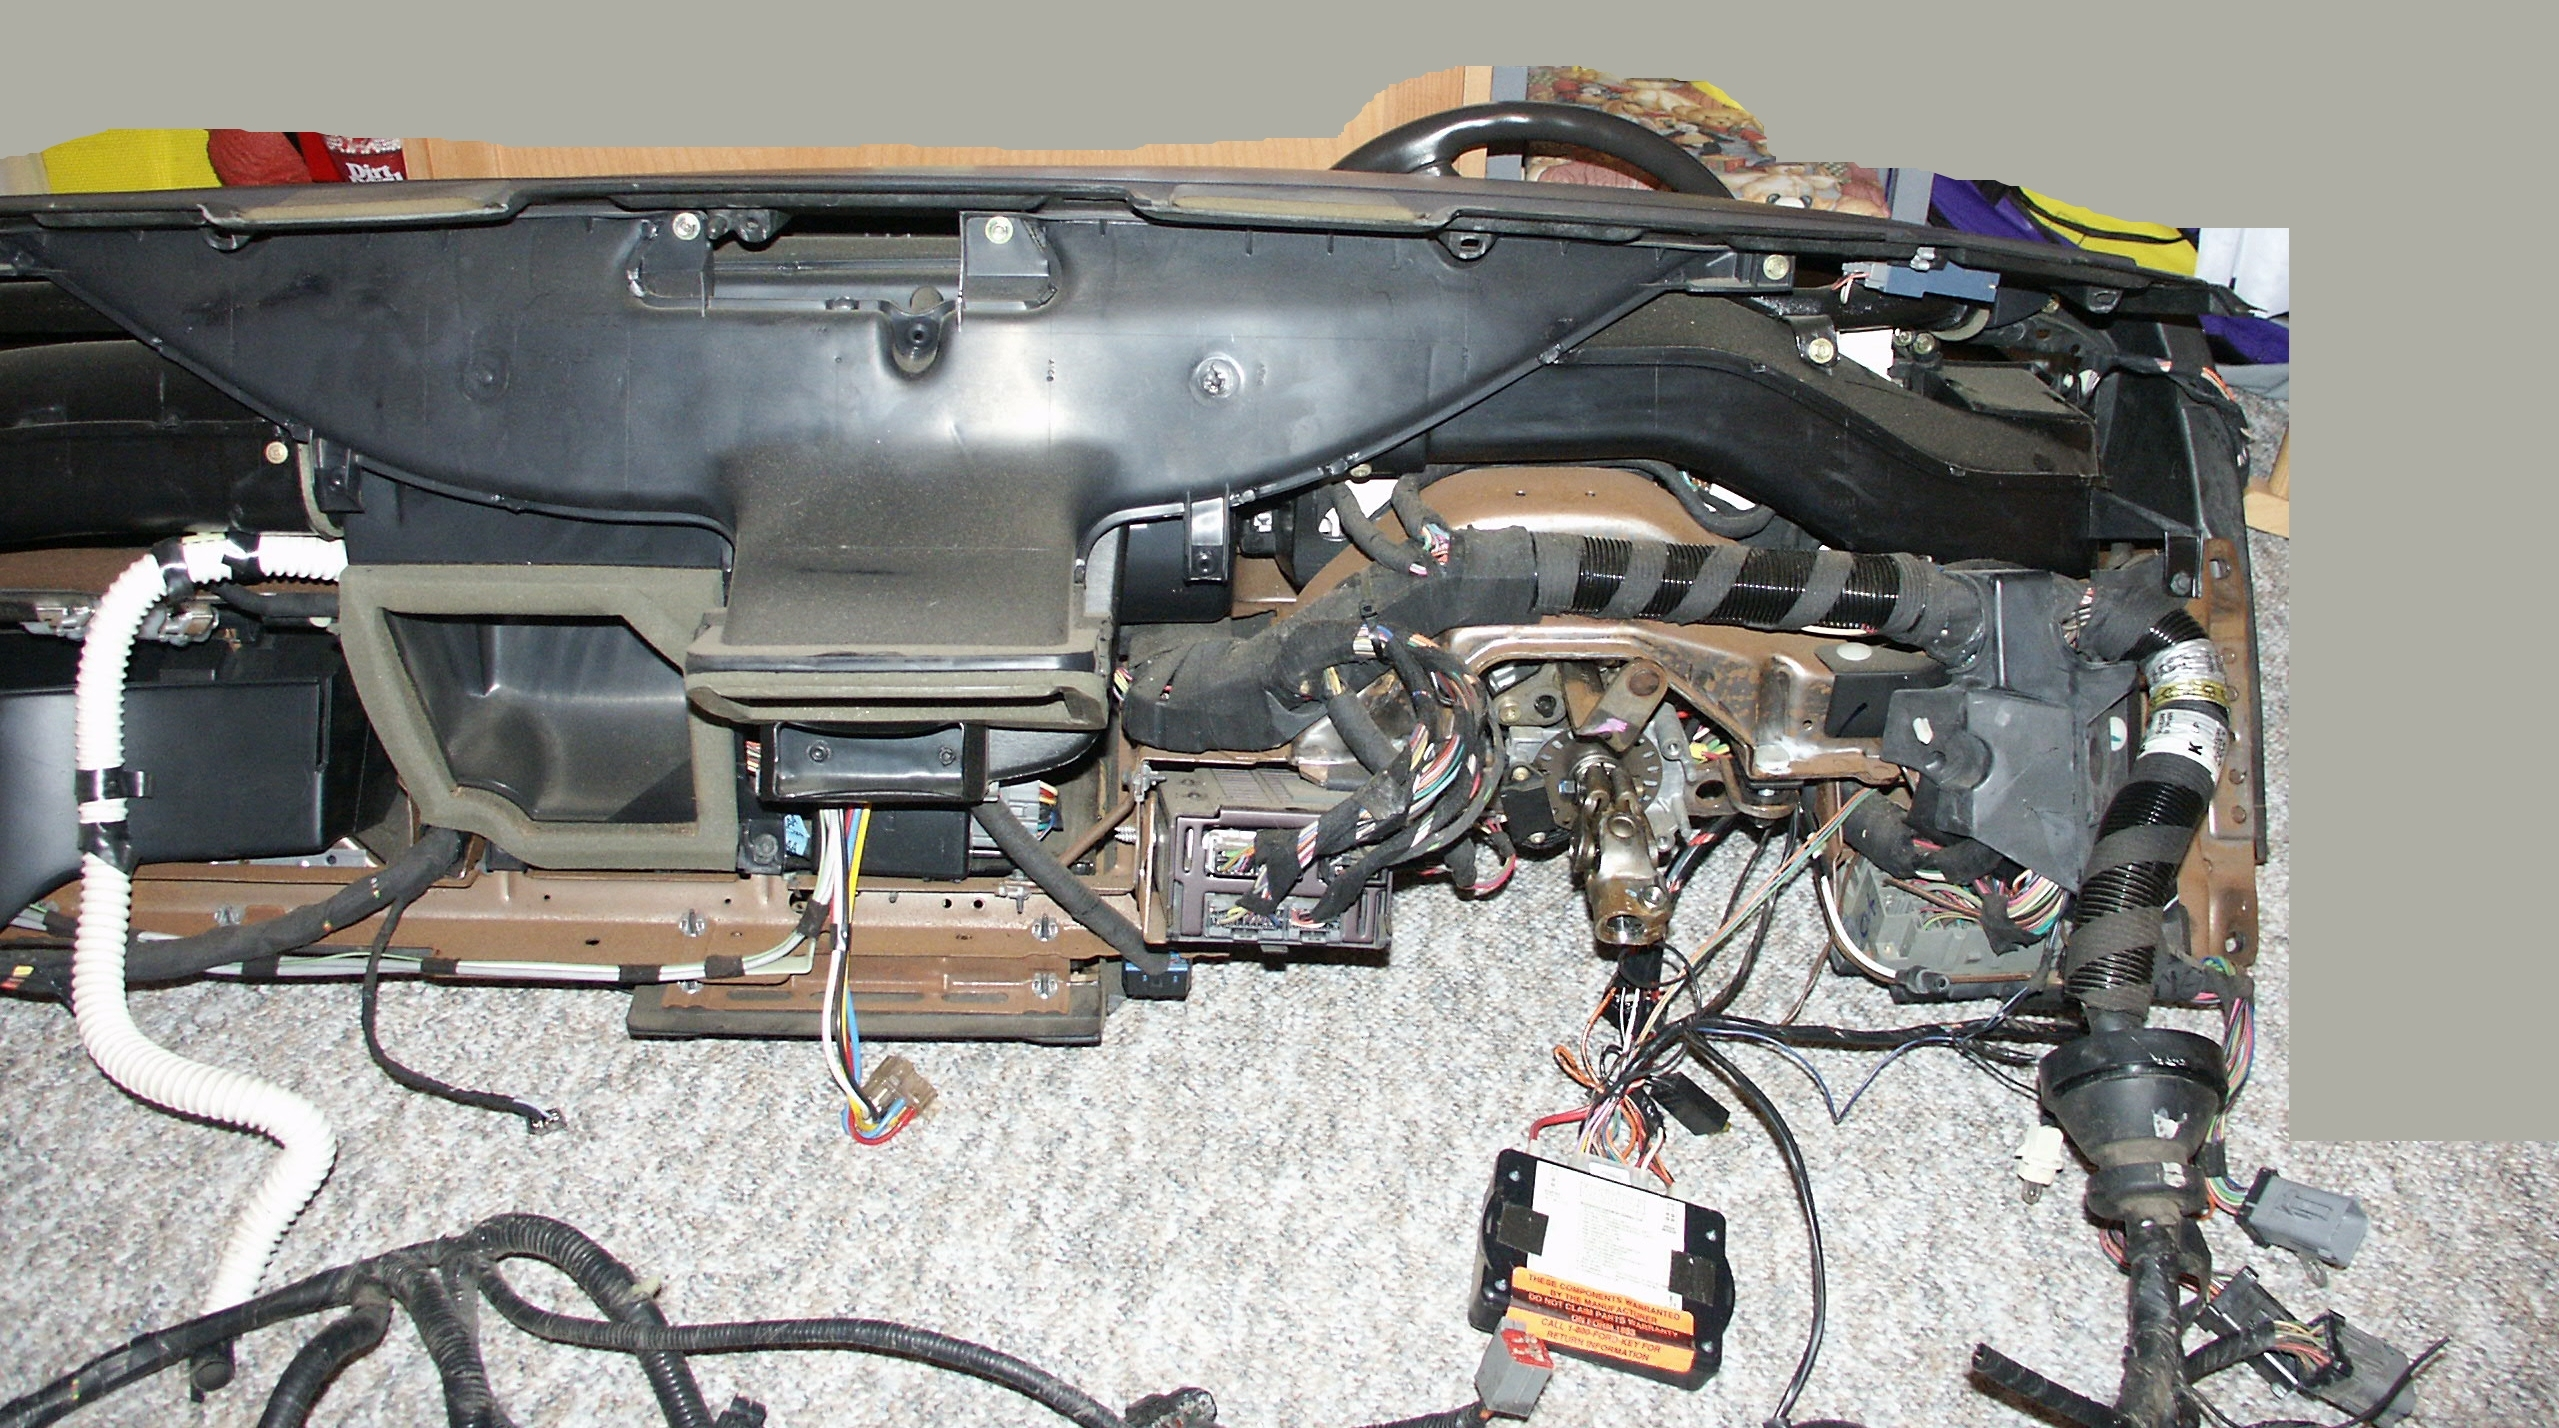 98 Lincoln Town Car Fuel Pump Wiring Diagram Will 2007 Fuse Ford Crown Victoria Dashboard Pictures 1998